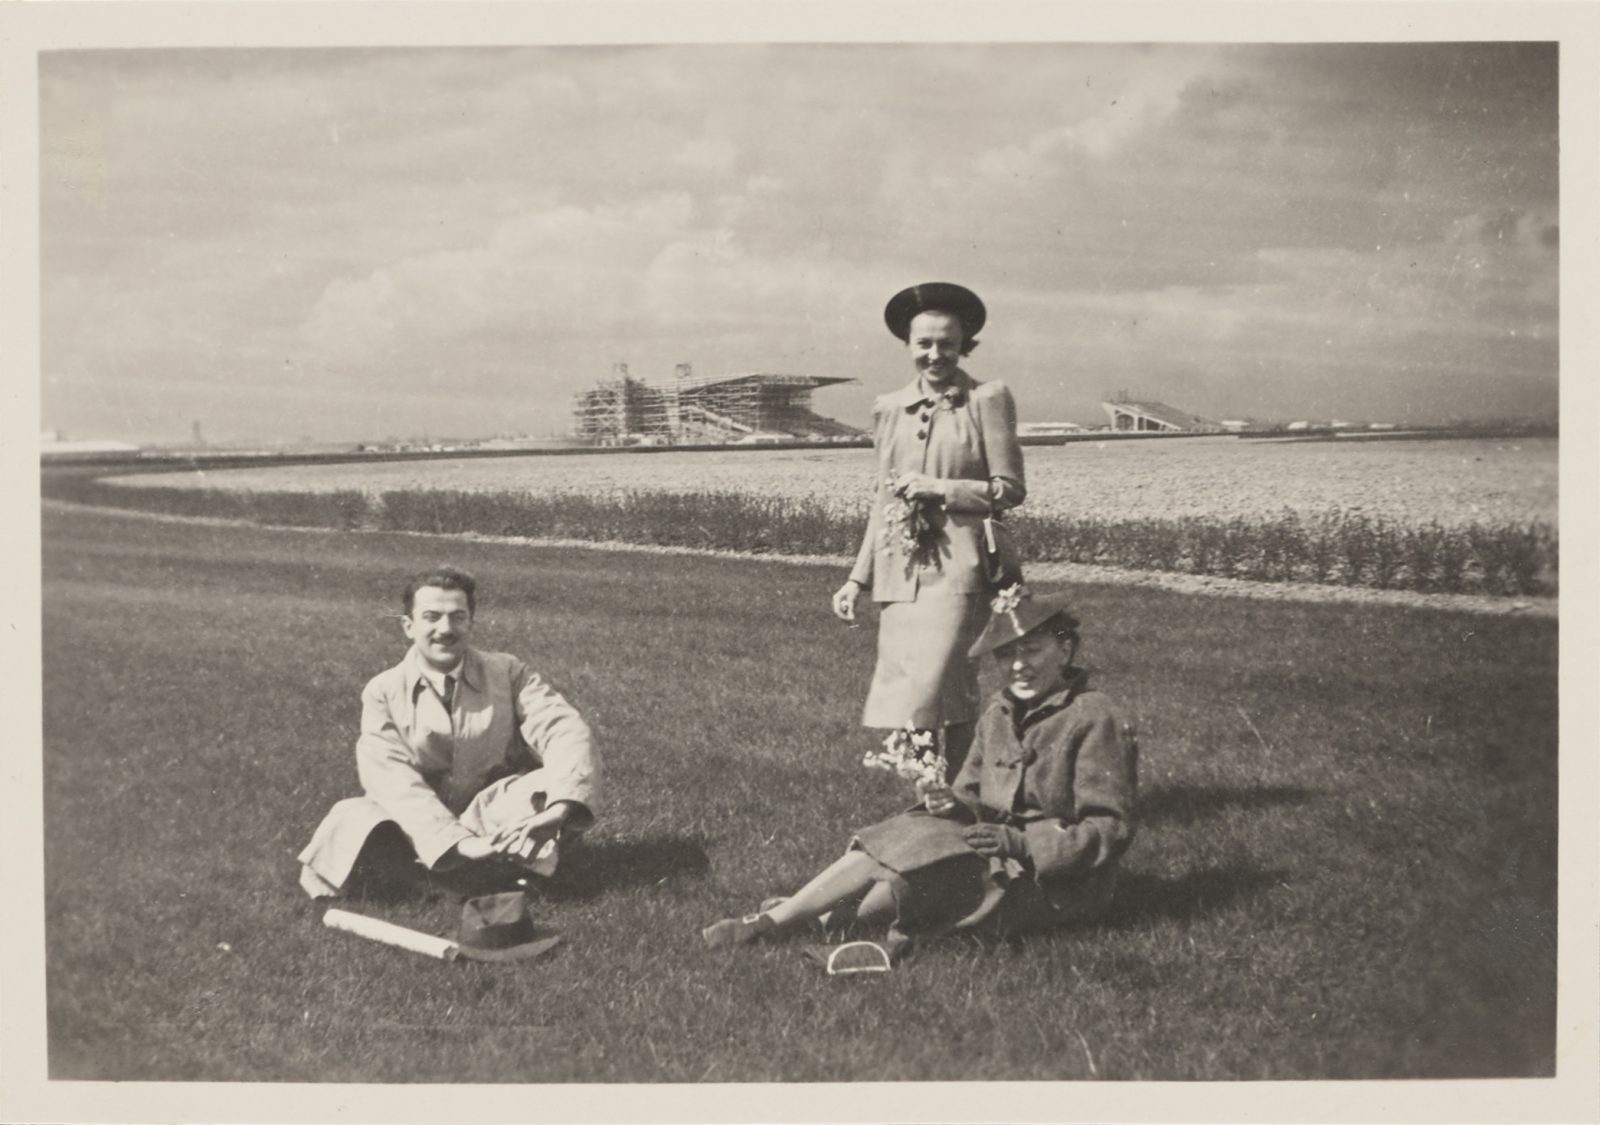 Janusz Alchimowicz, N.N. and Alina Scholtz on the premises of the horse ra-ce track, photo Tadeusz Giżycki, ca. 1936–1939/2021. Polish Horse Racing Club in Warsaw, item no. 5279, catalogue no. X/47